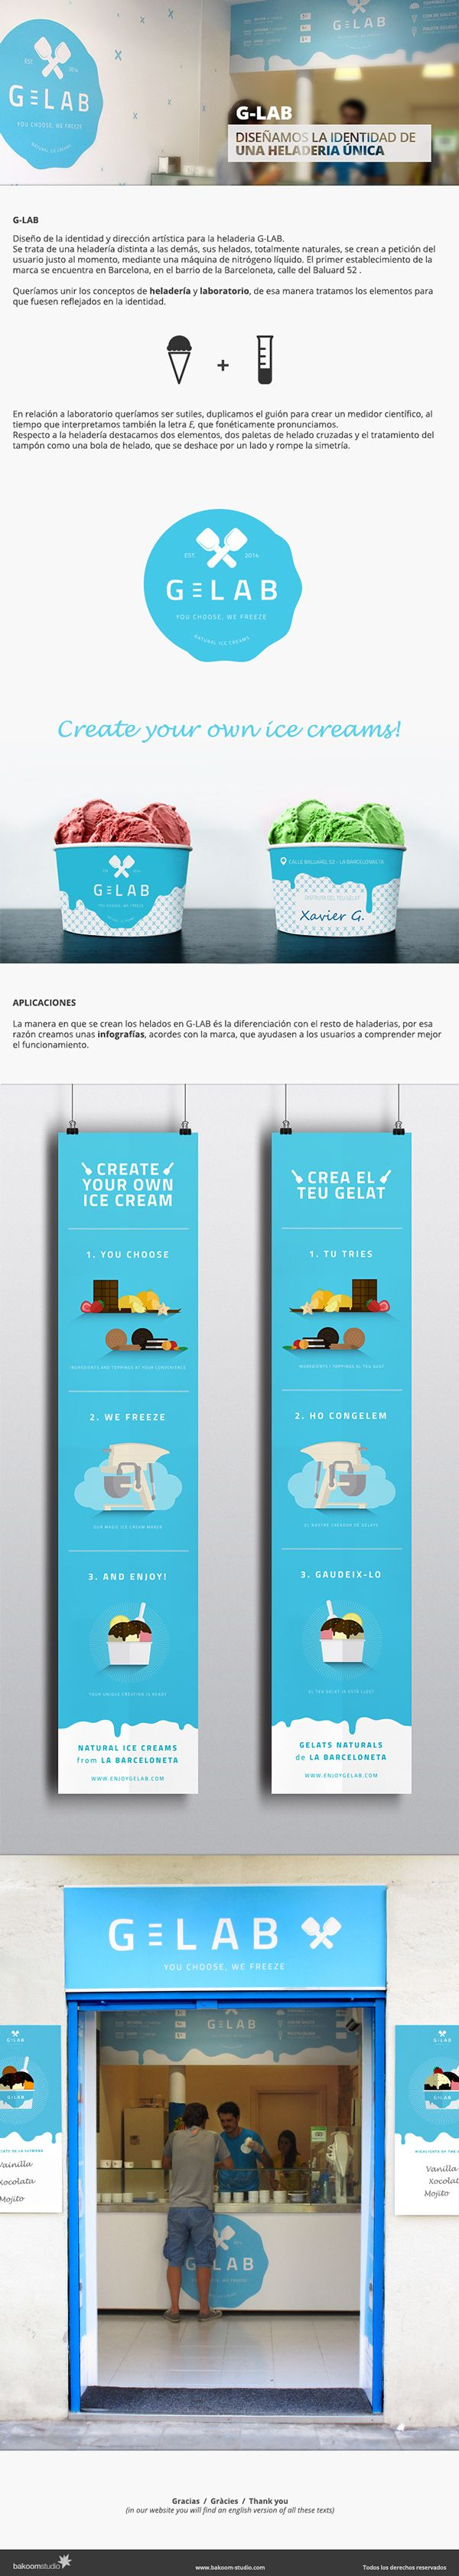 Identity design and art direction for G-LAB, ice cream shop. #icecreams #design #logo